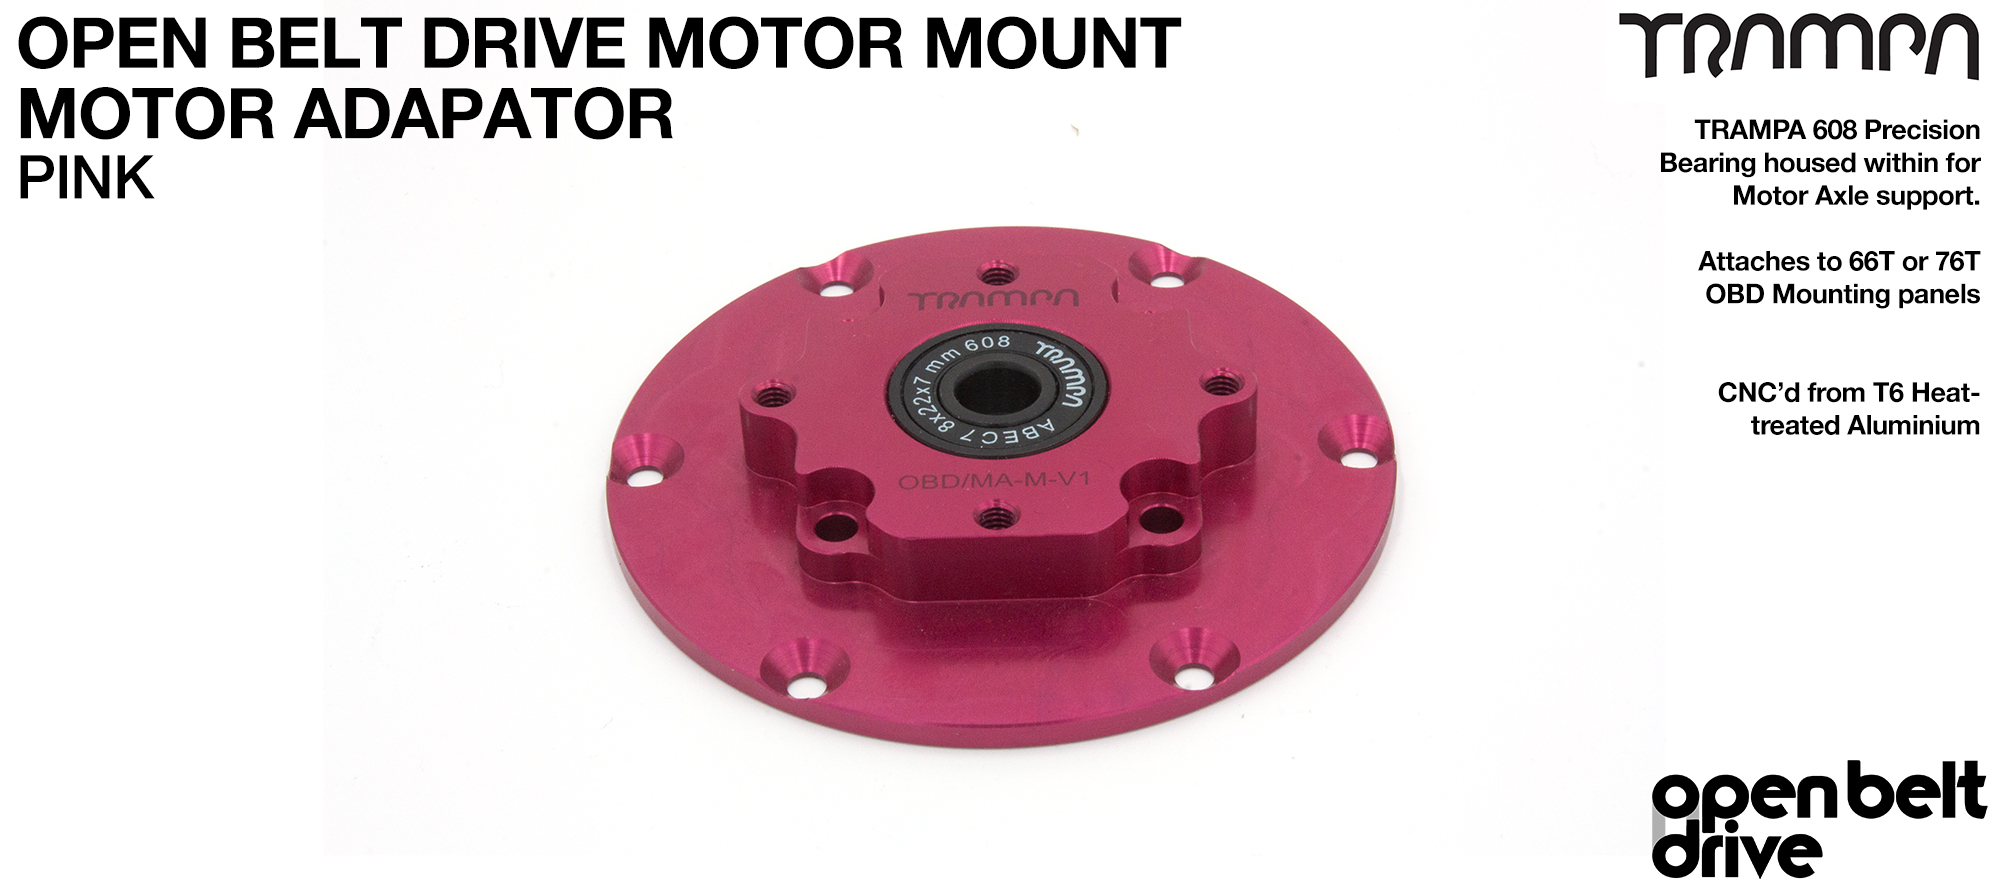 PINK OBD Motor Adaptors with Housed Bearing